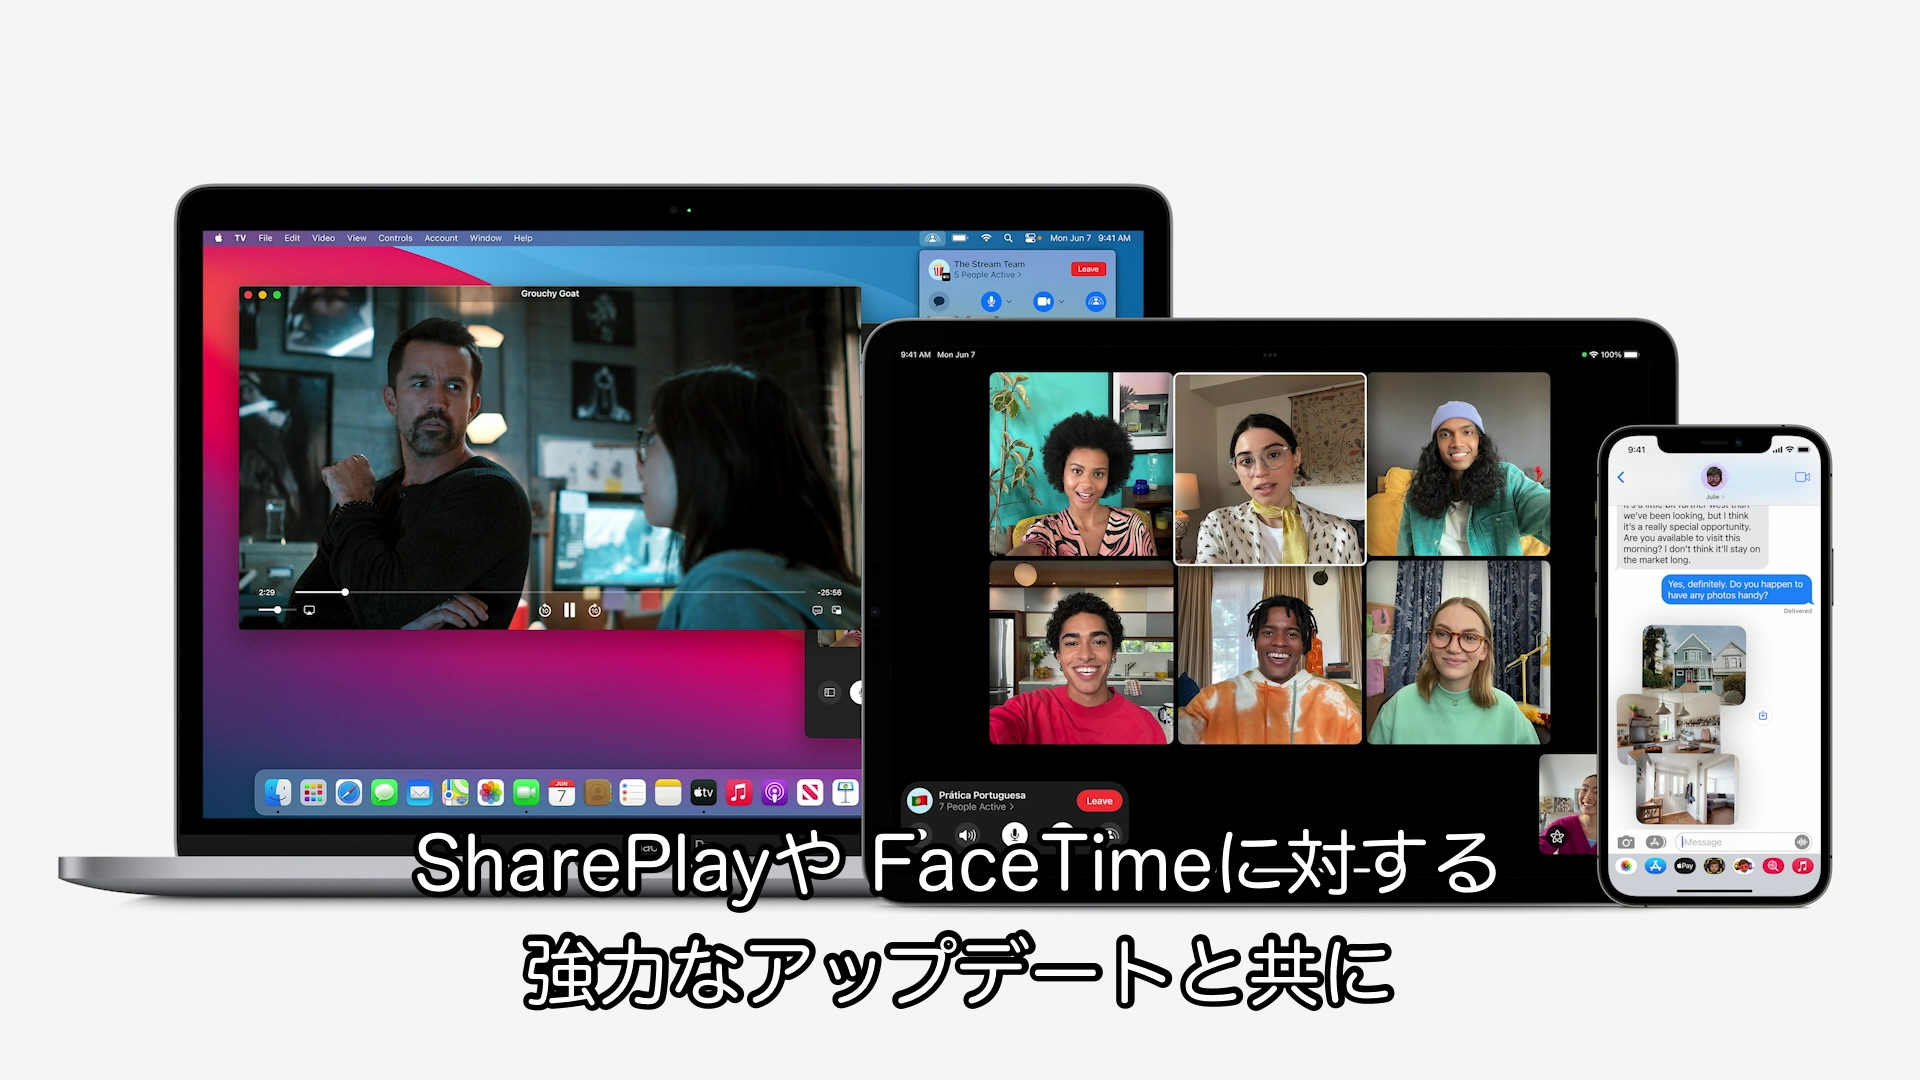 SharePlay and New FaceTime